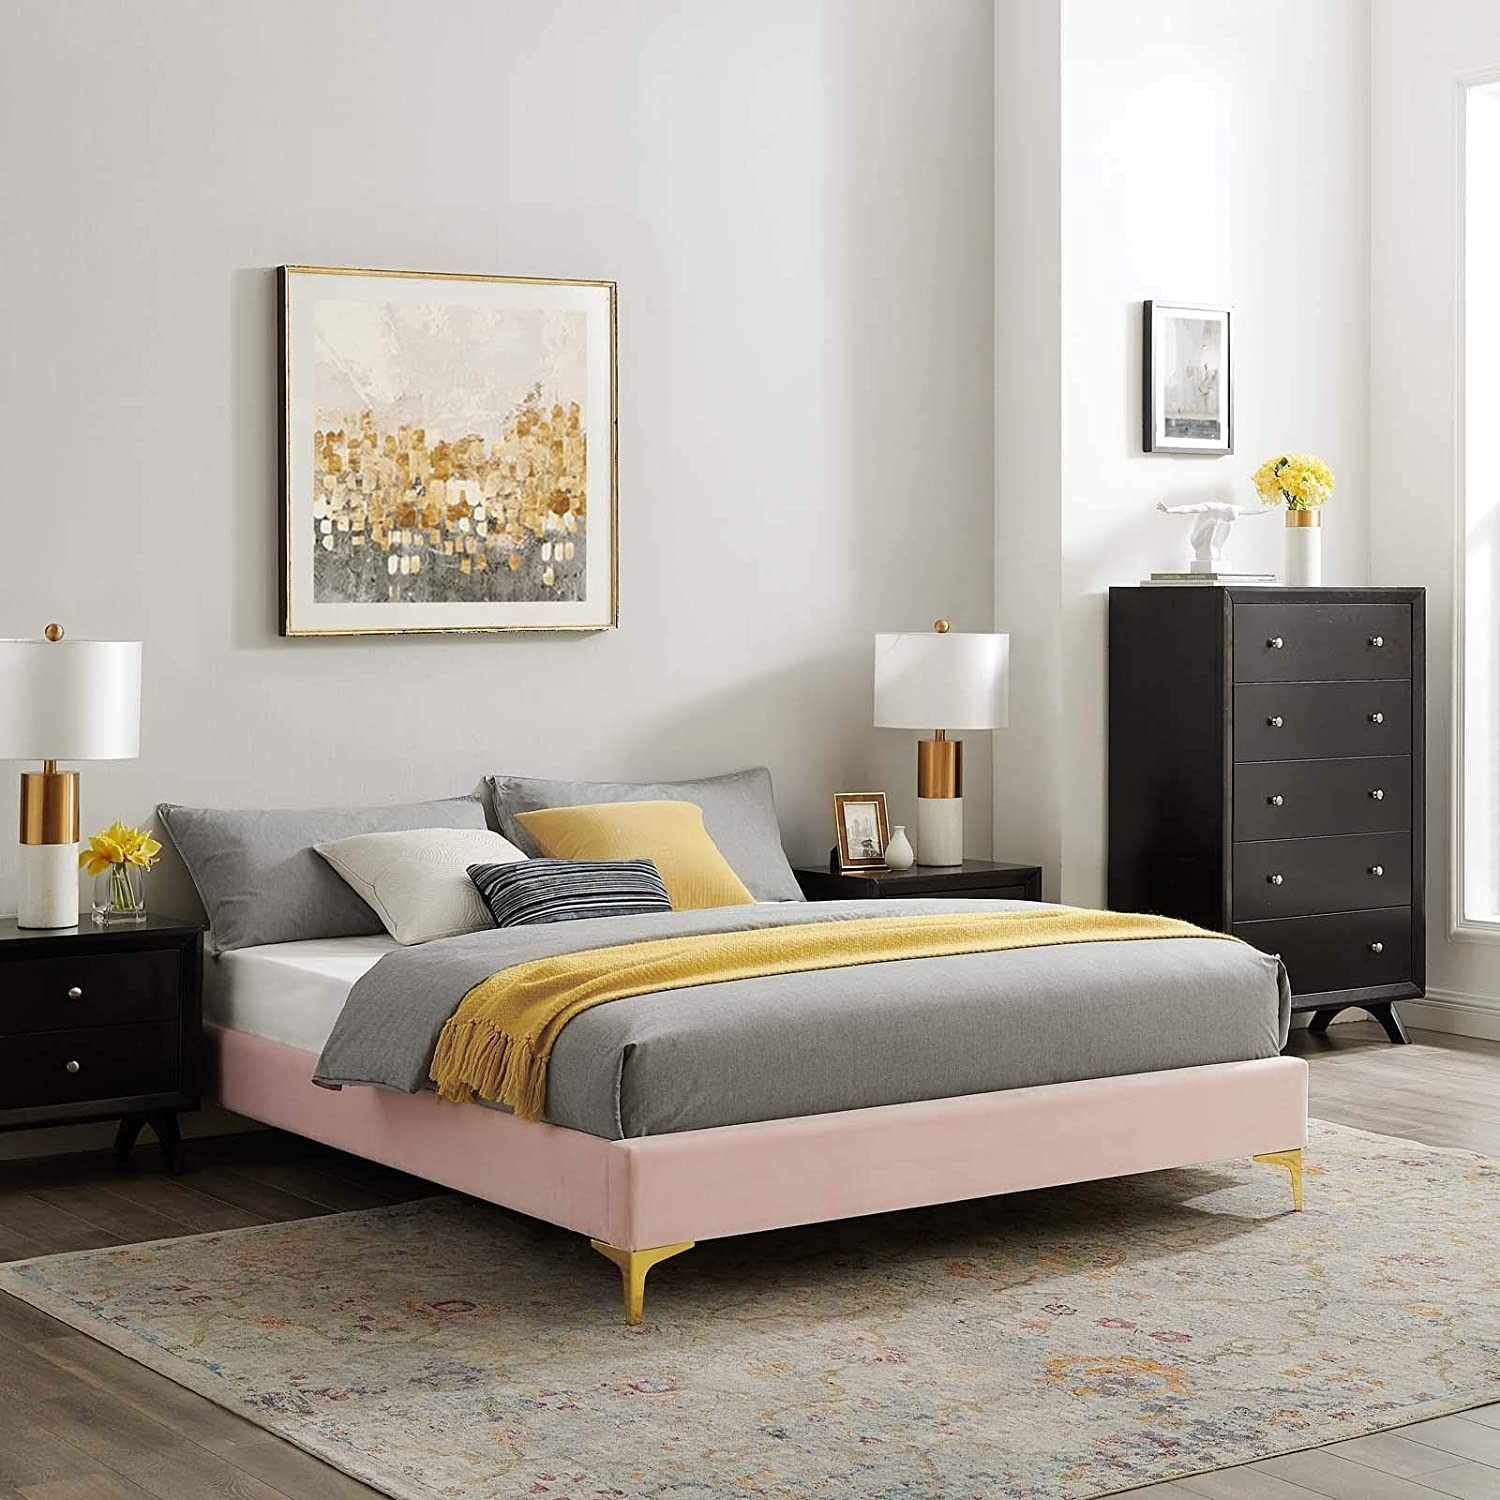 Twin Bed Frame In Pink Performance Velvet - image-6